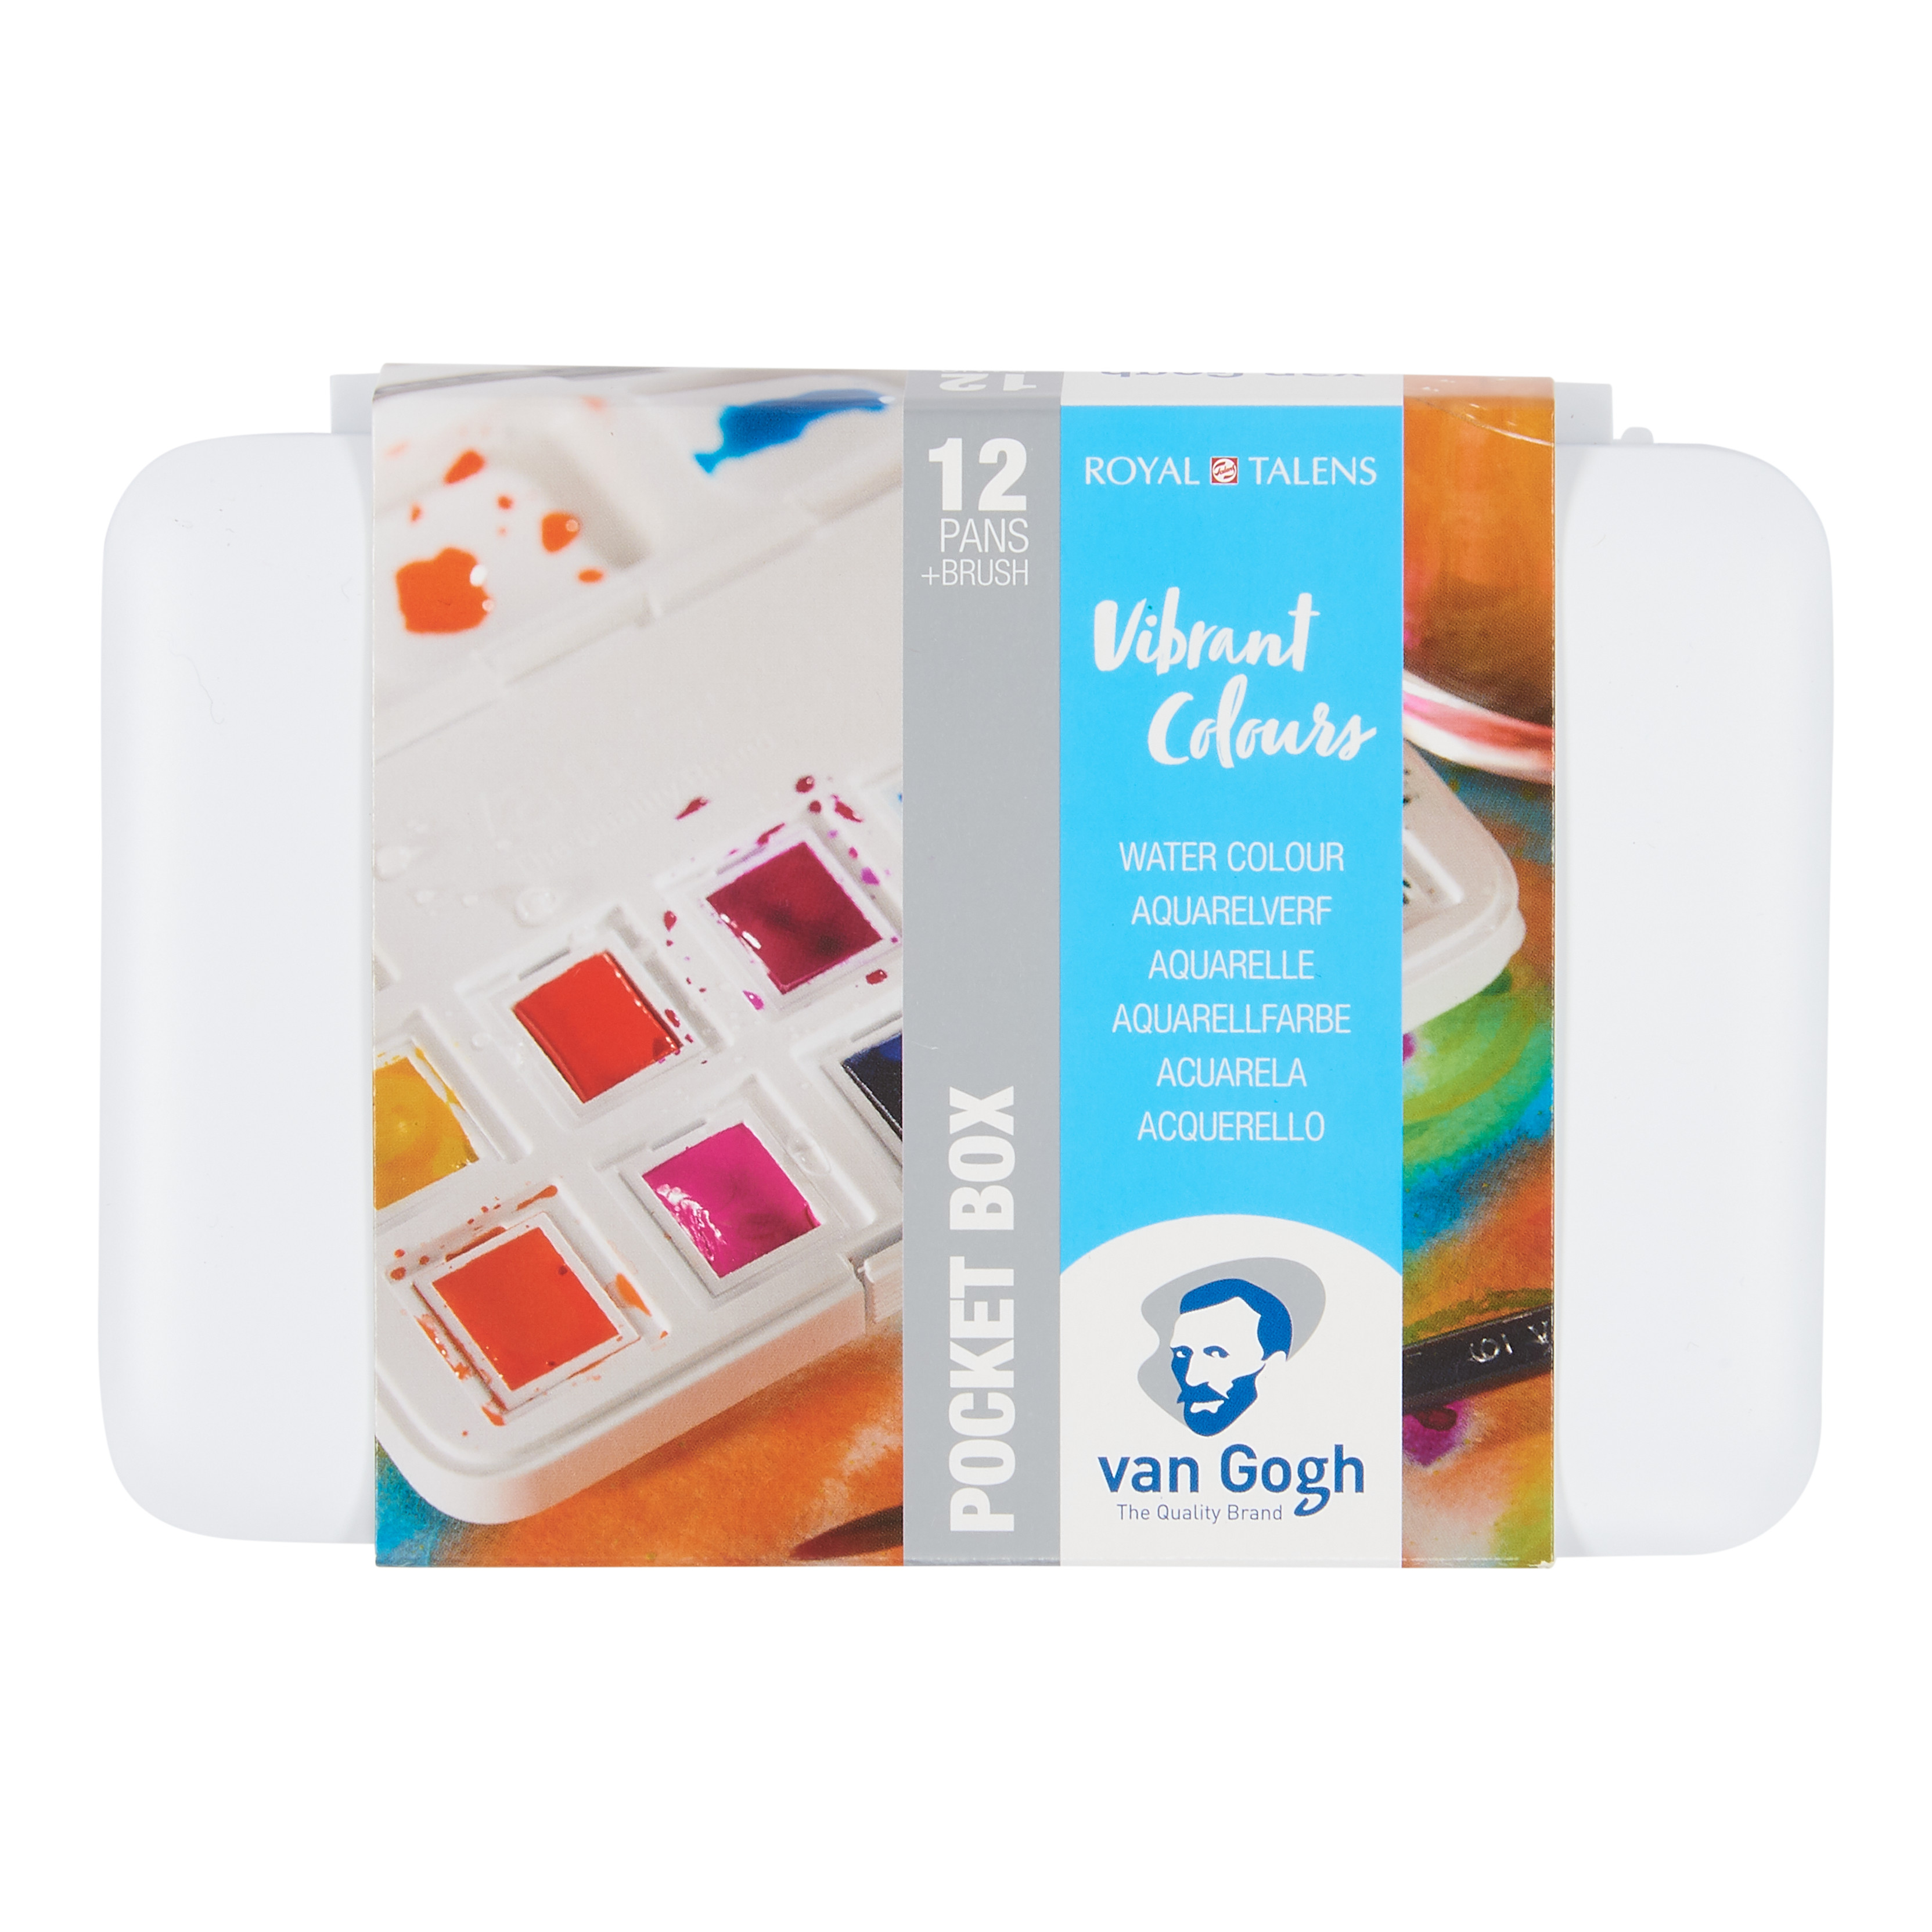 Van Gogh Water Colour Pocket Box Vibrant Colours with 12 Colours in Half Pans